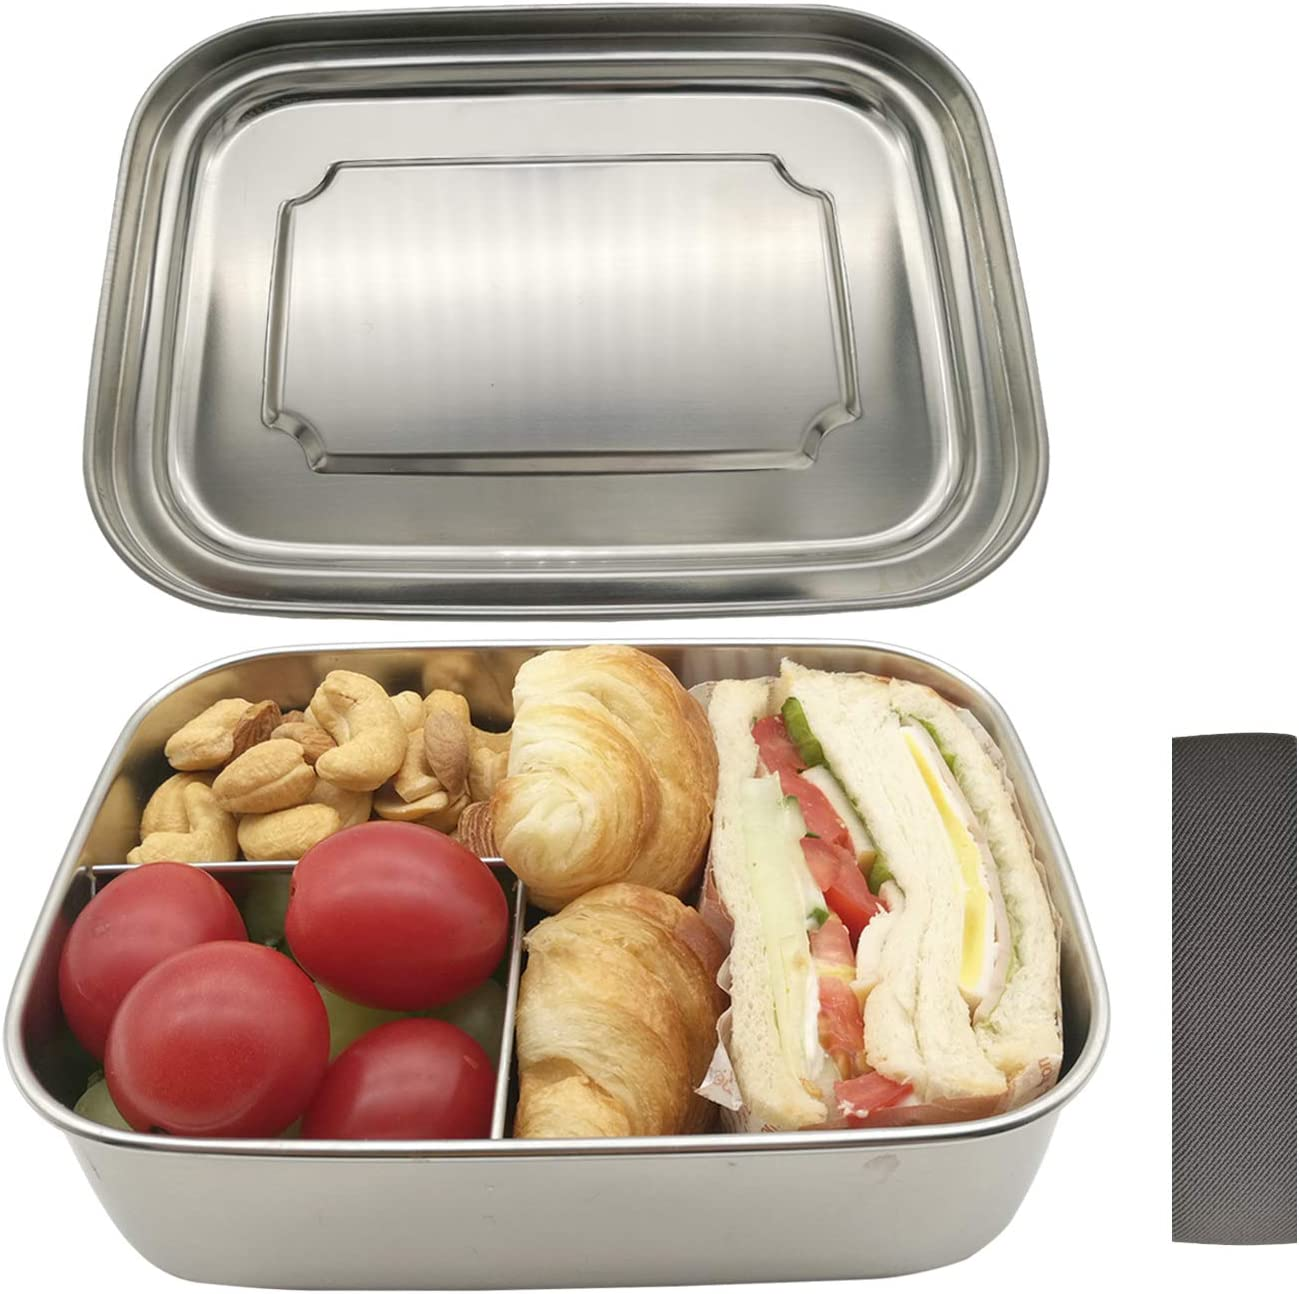 UPTRUST Stainless Steel Bento Lunch container Bento Lunch Box for Kids and Adults. 3 Compartment food Container for Meal Fruit Snack On the Go, Durable Metal Lunch Containers (40OZ/1200ml)